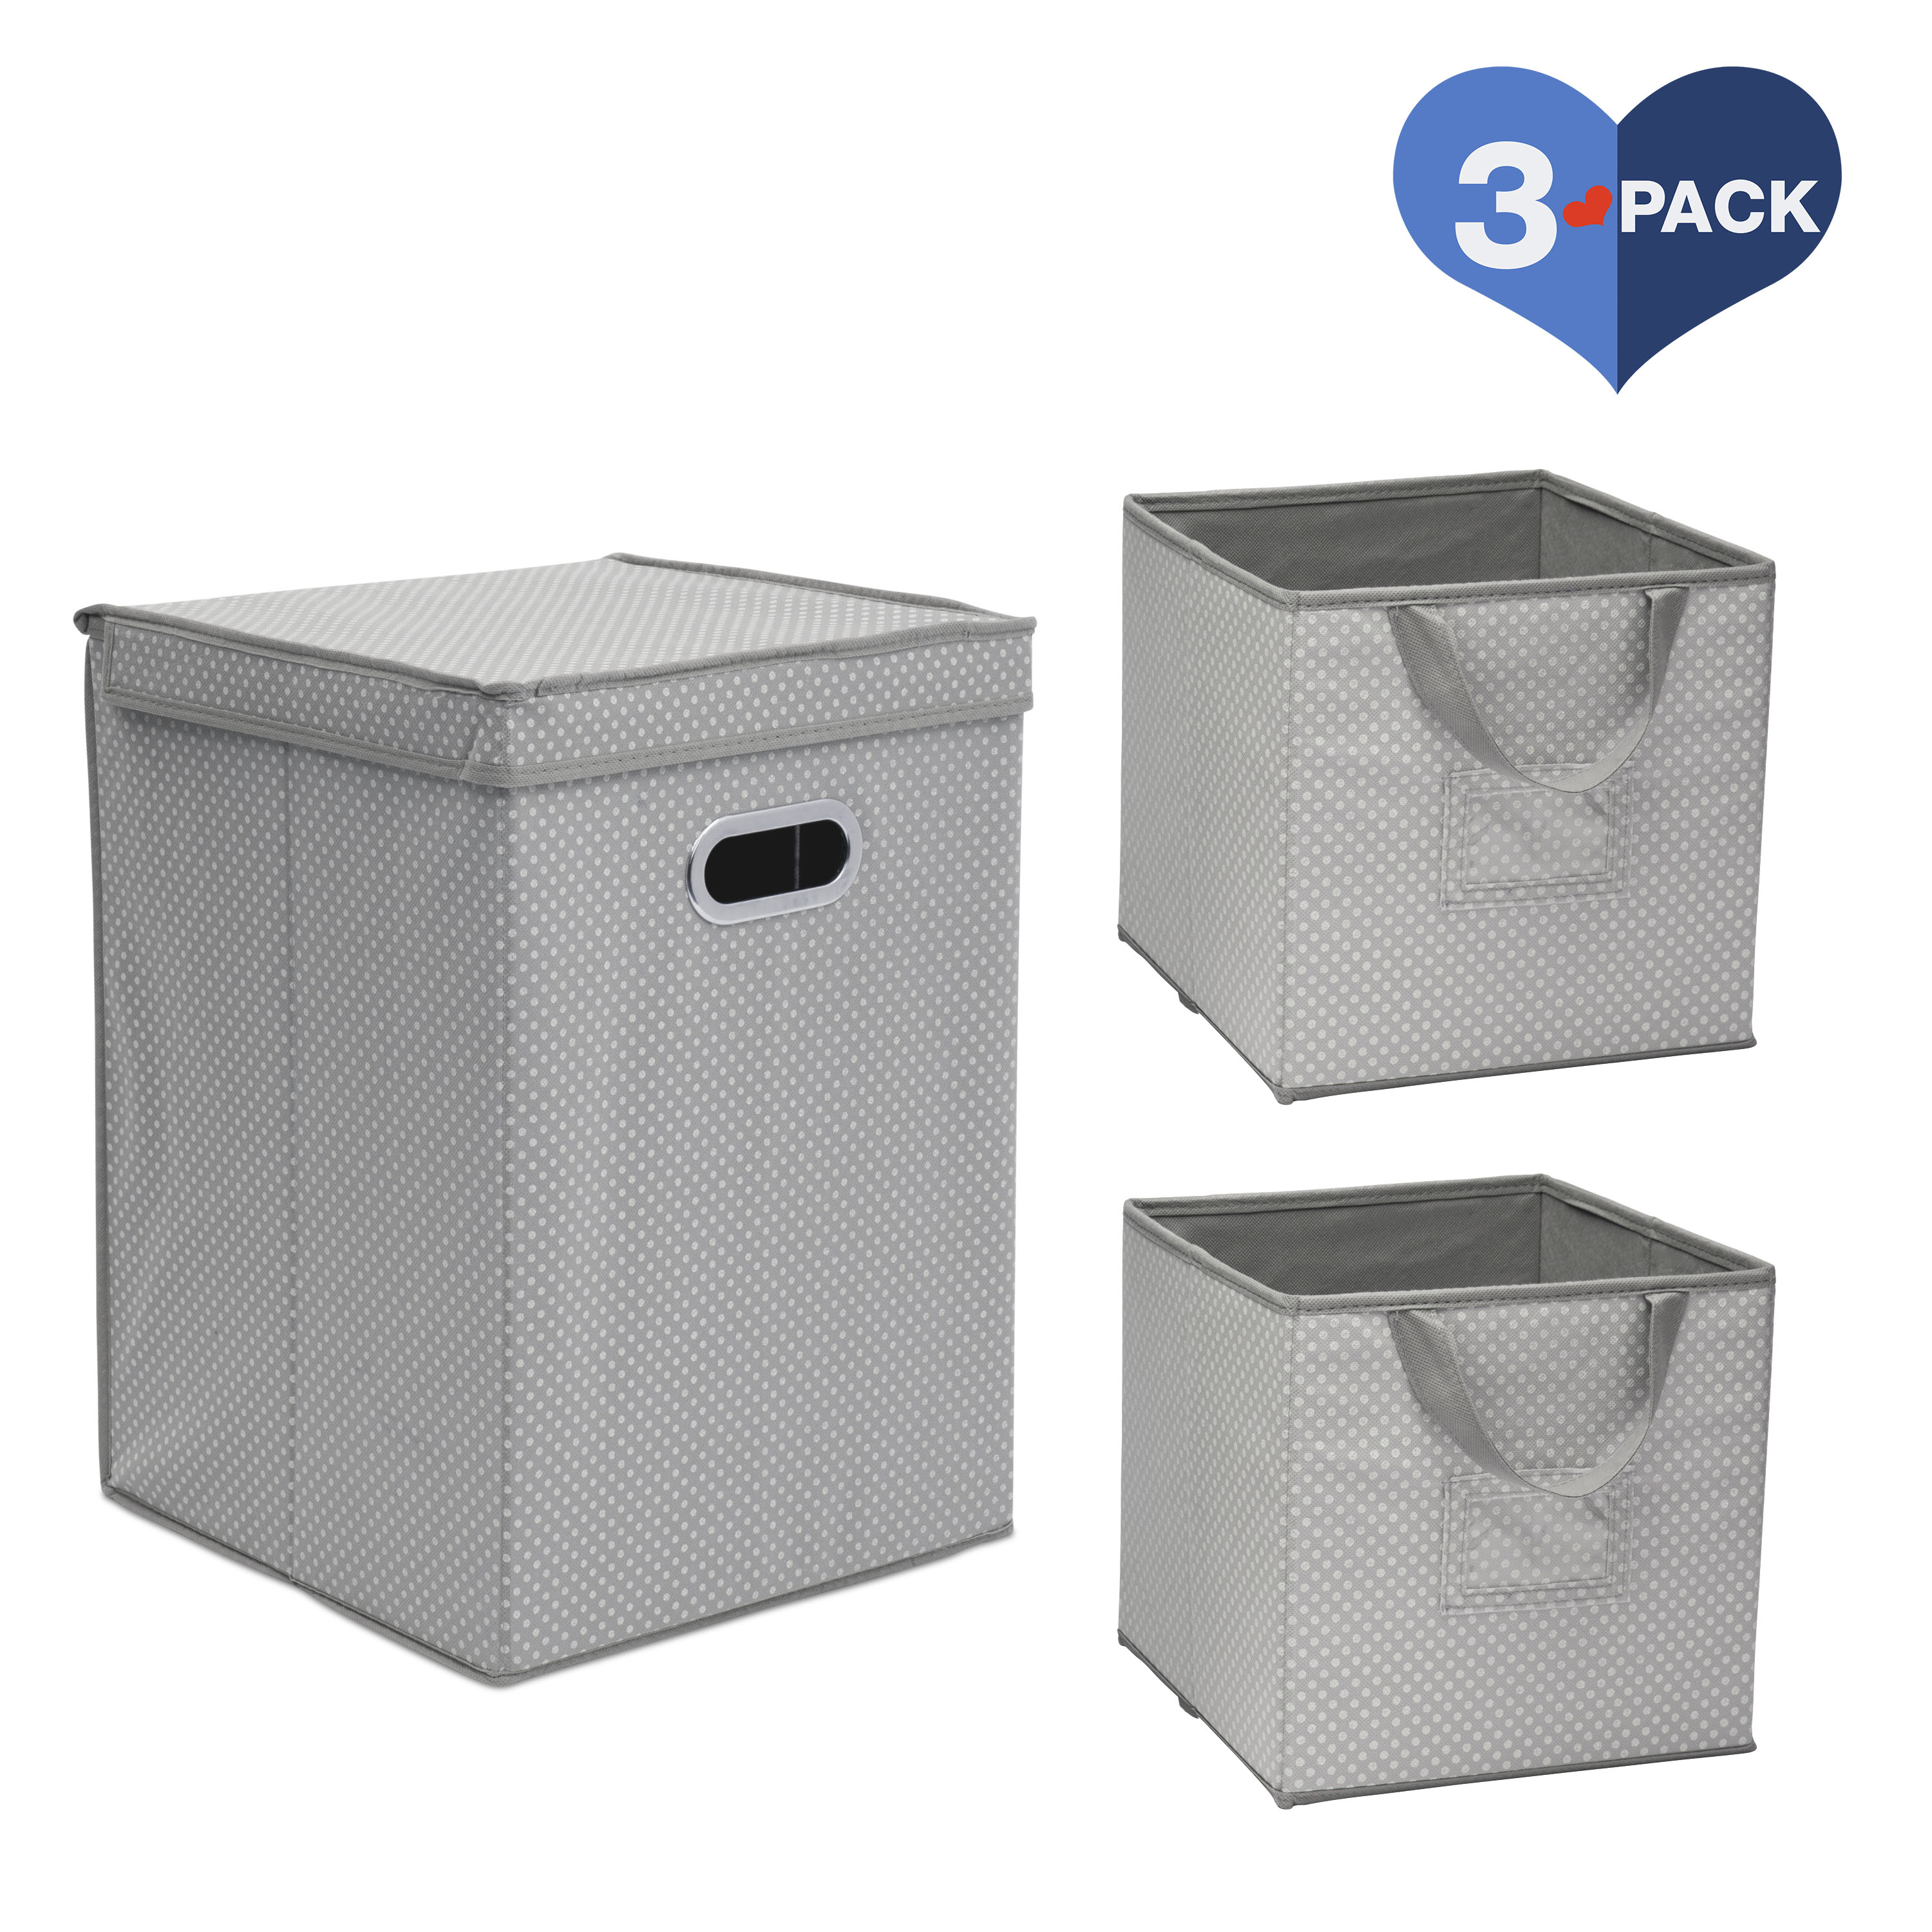 Delta Children 3-Piece Nursery Organization Set for Babies and Kids – Includes 2 Foldable/Collapsible Storage Bins and 1 Compact Hamper, Dove Grey